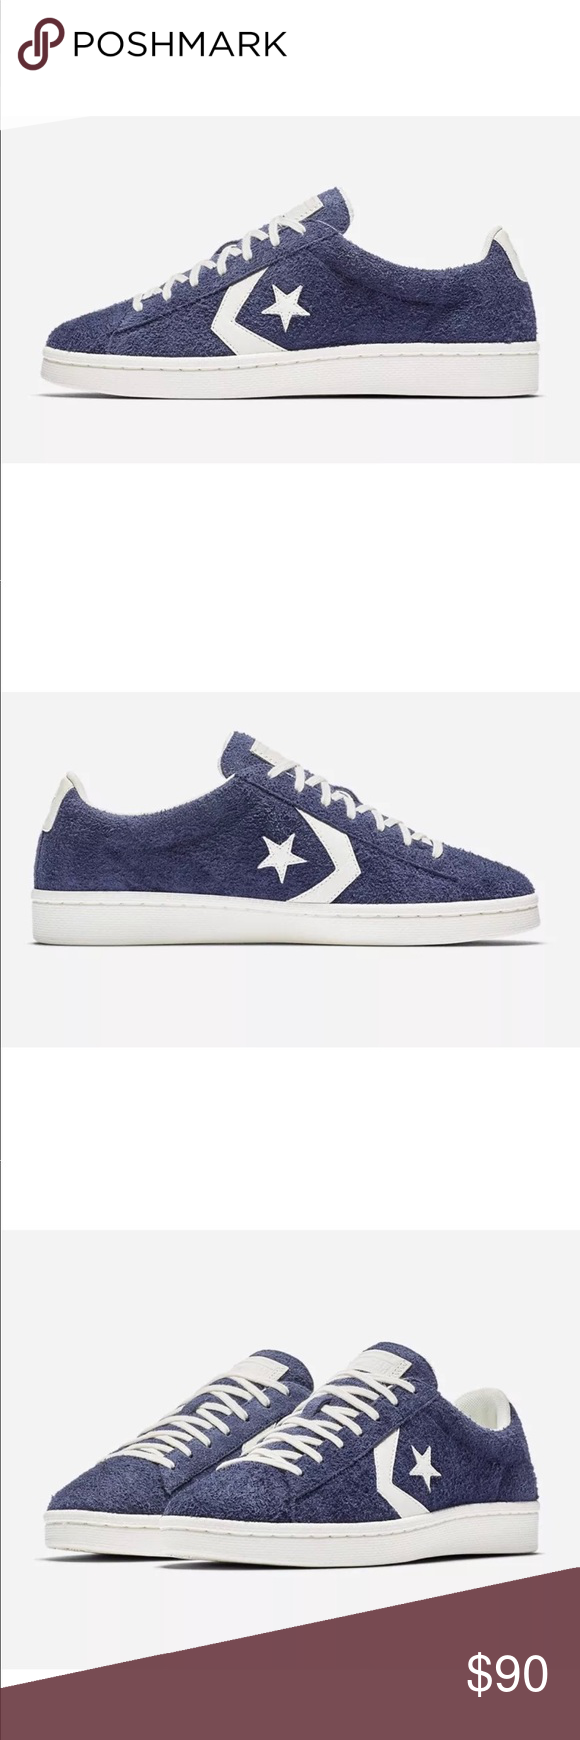 9f39a885ce3 Converse Pro Leather Ox Blue Vintage Suede Low Top A timeless kick since   76. Updated pro leather shape and branding. Lunarlon sockliner for  superior ...